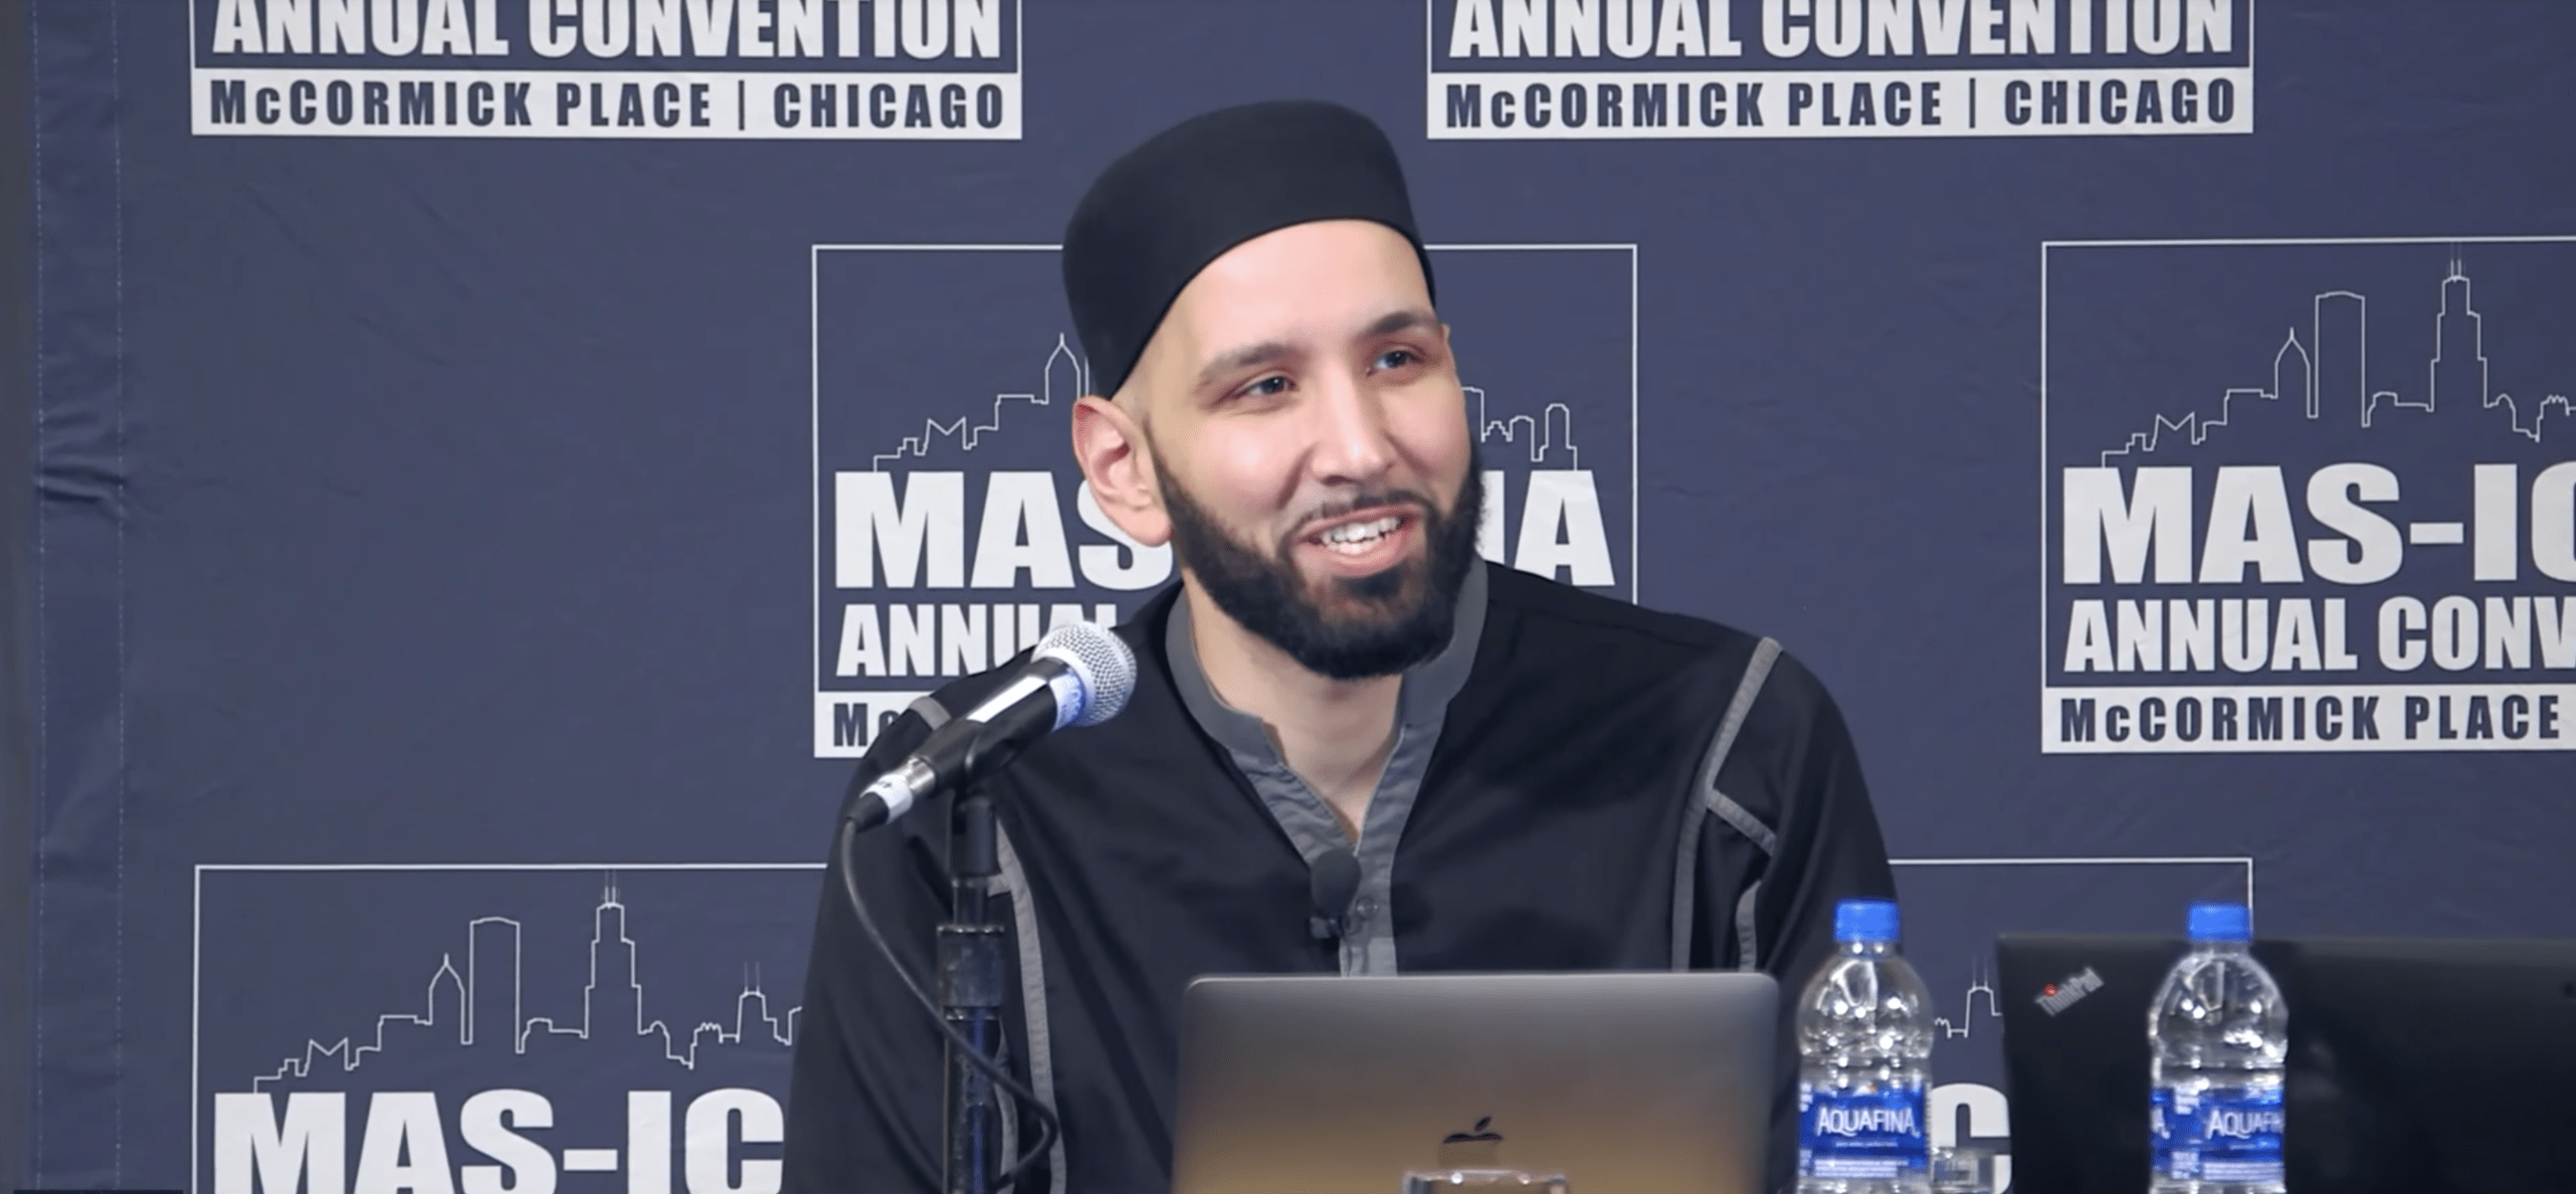 Omar Suleiman – Two Lights Enveloped in Darkness